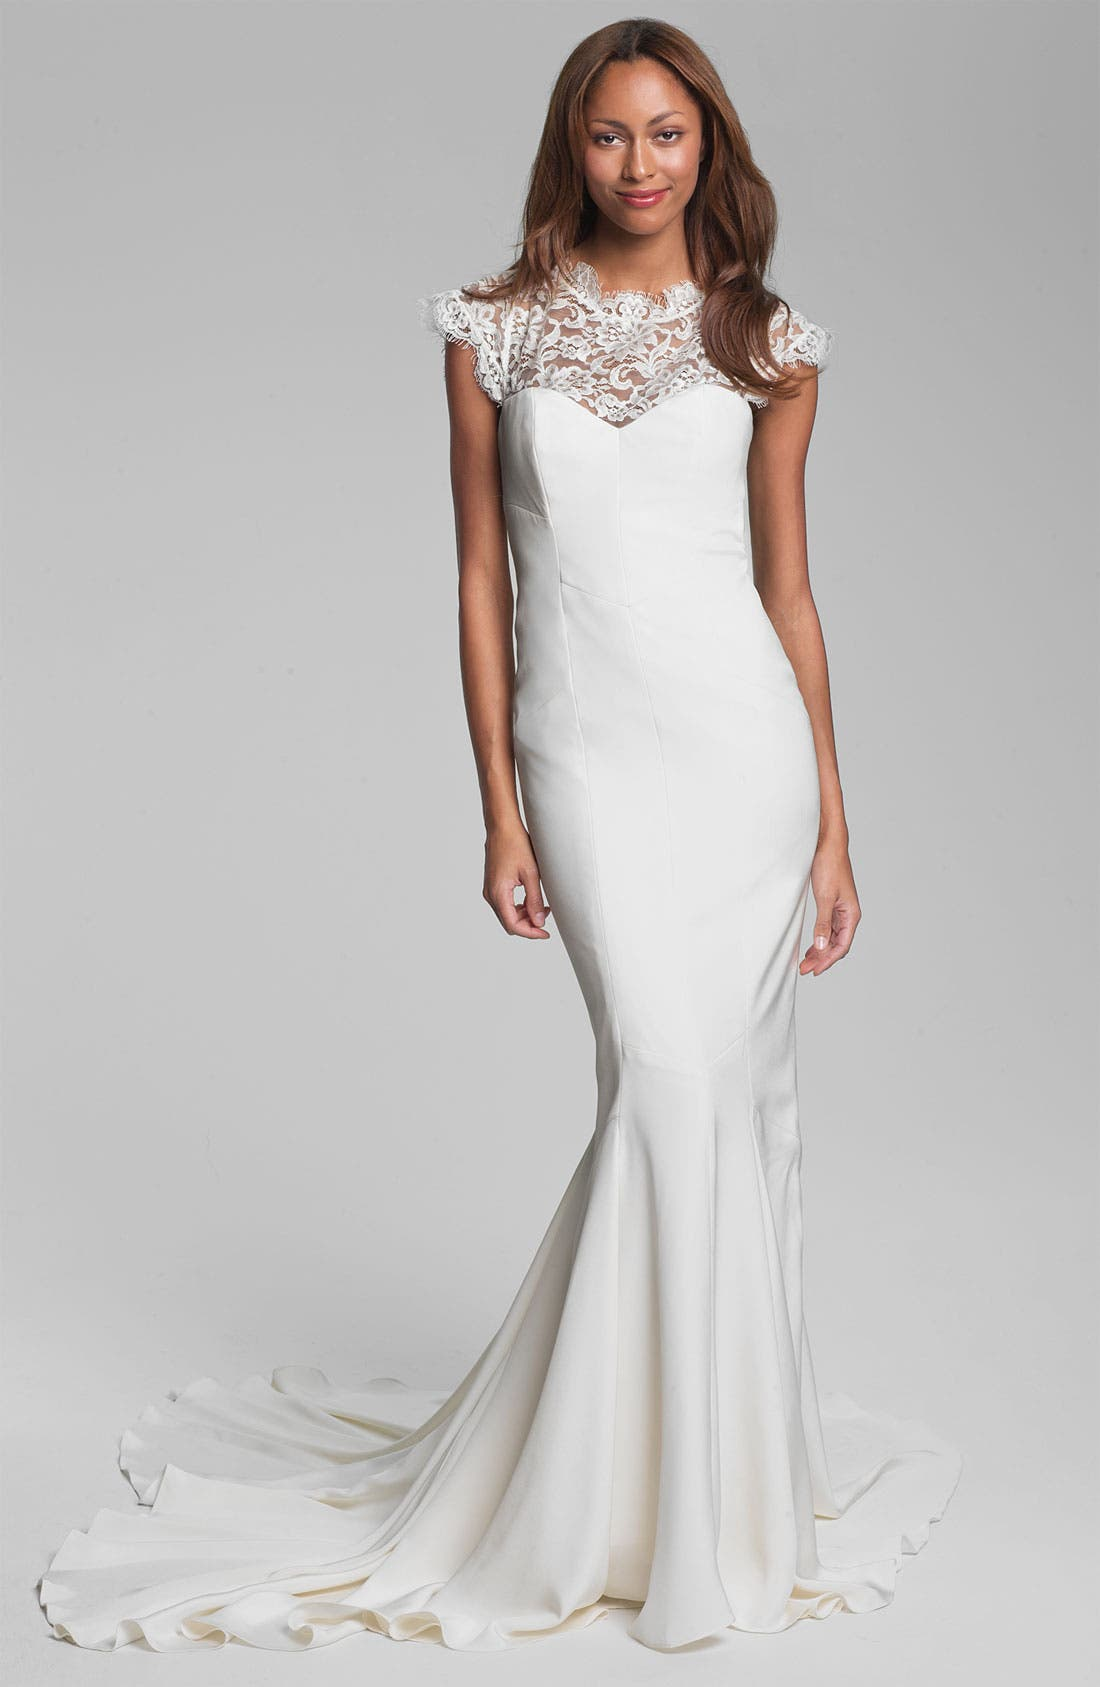 Main Image - Nicole Miller 'Lauren' Lace Yoke Satin & Charmeuse Mermaid Gown